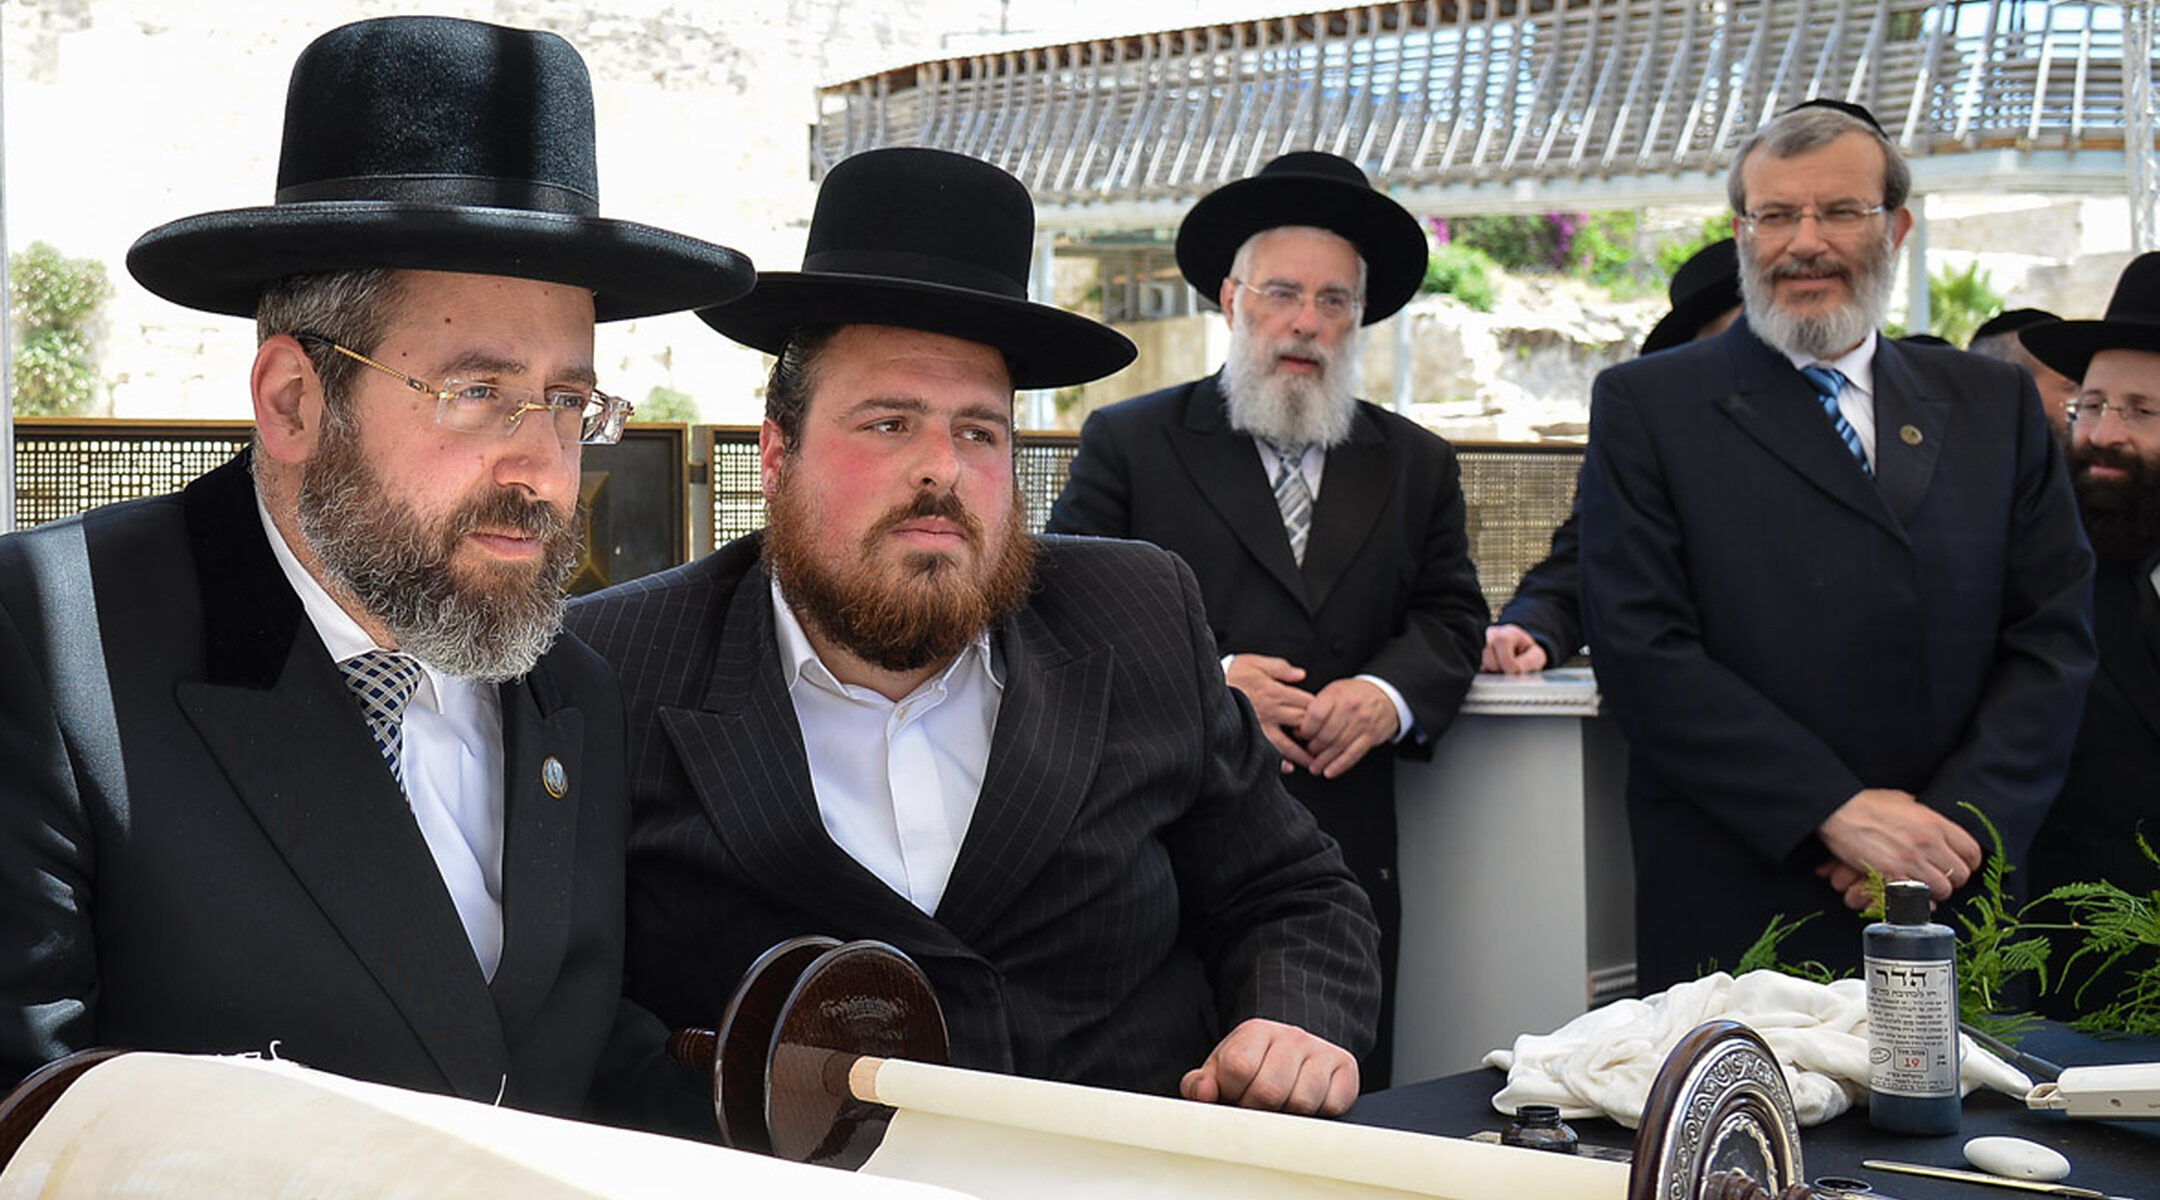 Chief Ashkenazi Rabbi David Lau, left, and other rabbis attend a Torah scroll completion ceremony in Jerusalem, Israel on June 15, 2015. (Eli Segal)